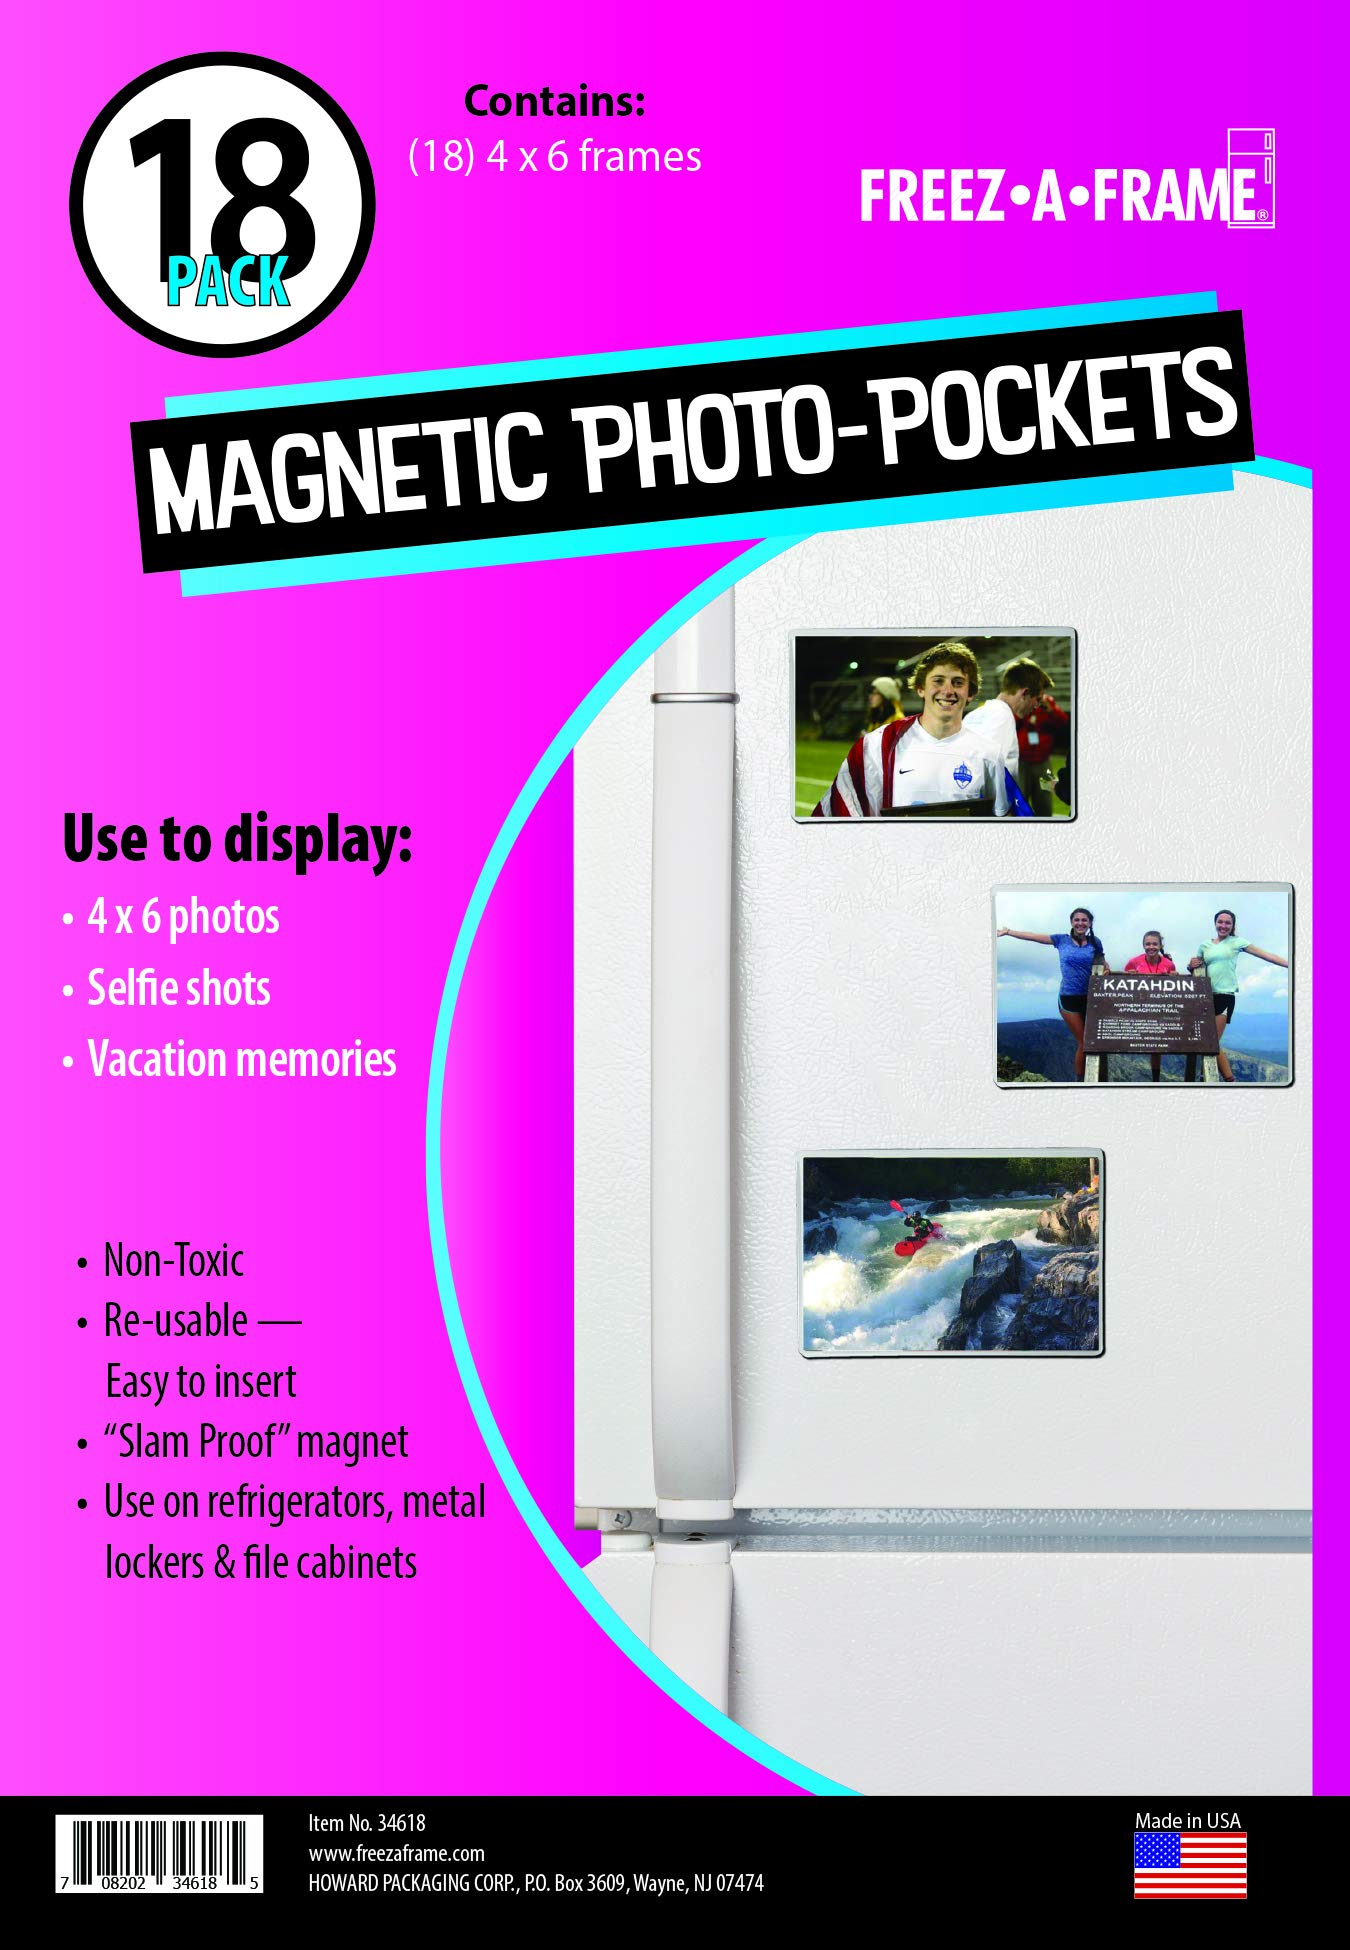 Freez A Frame Clear Magnetic Picture Frame Pockets For Refrigerator School Locker, or any Magnetic Surface 18 Pack Holds 4x6 Photos (4 x 6)